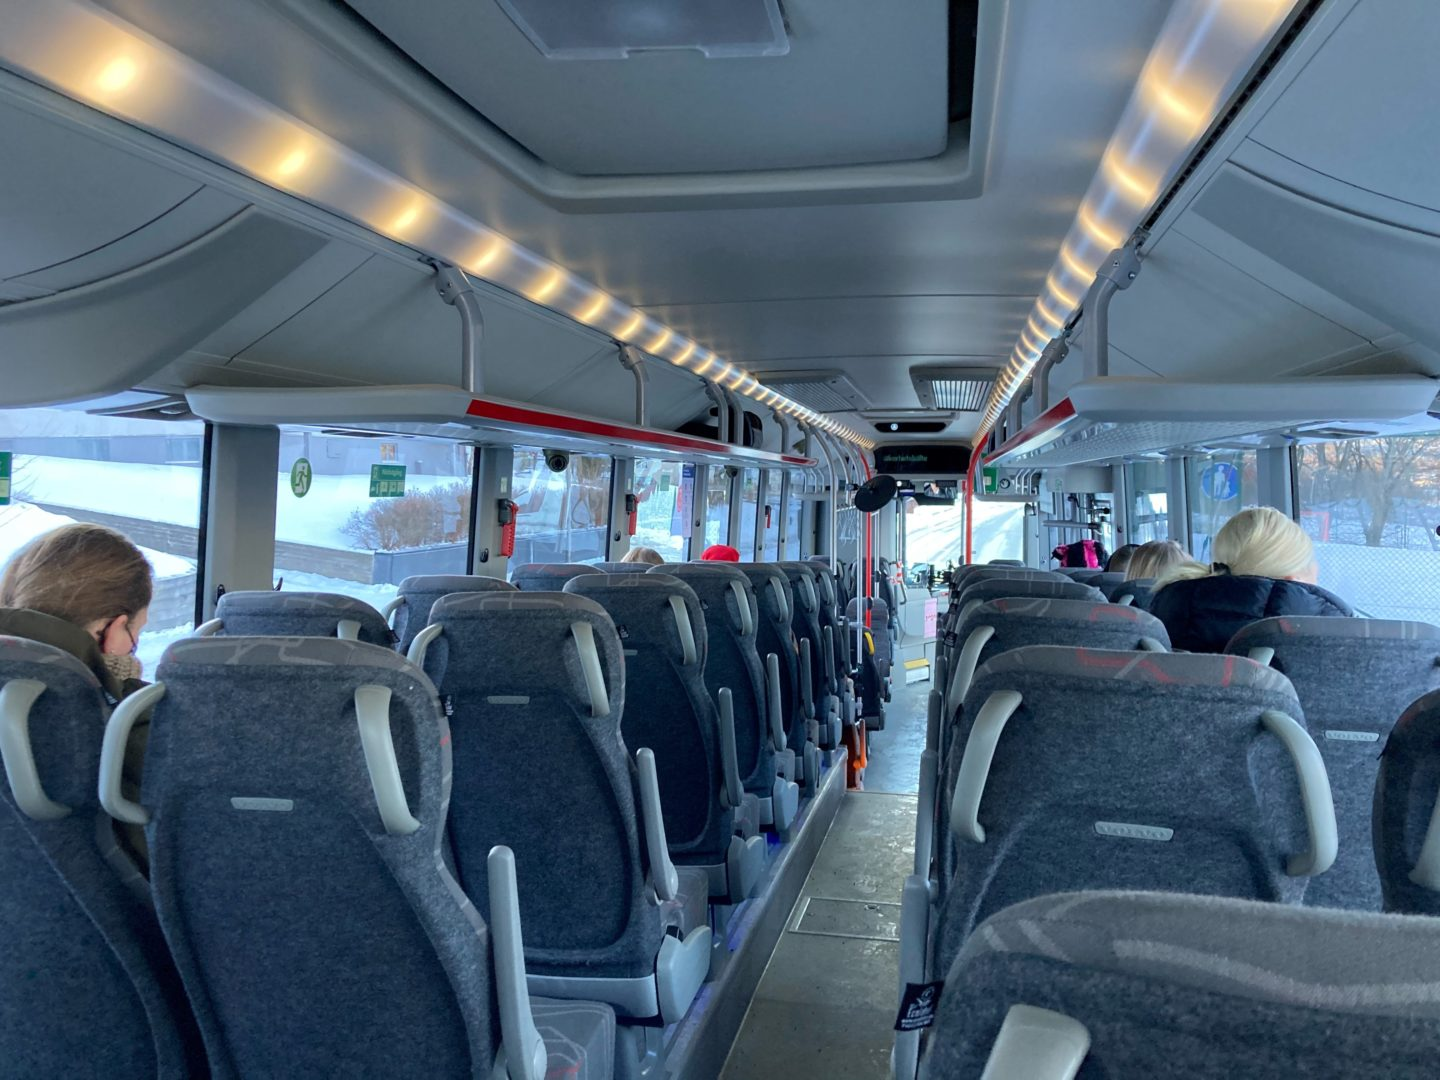 An Exchange Student's Tips for Things to Watch for on Busses in Sweden (Especially for Americans!)